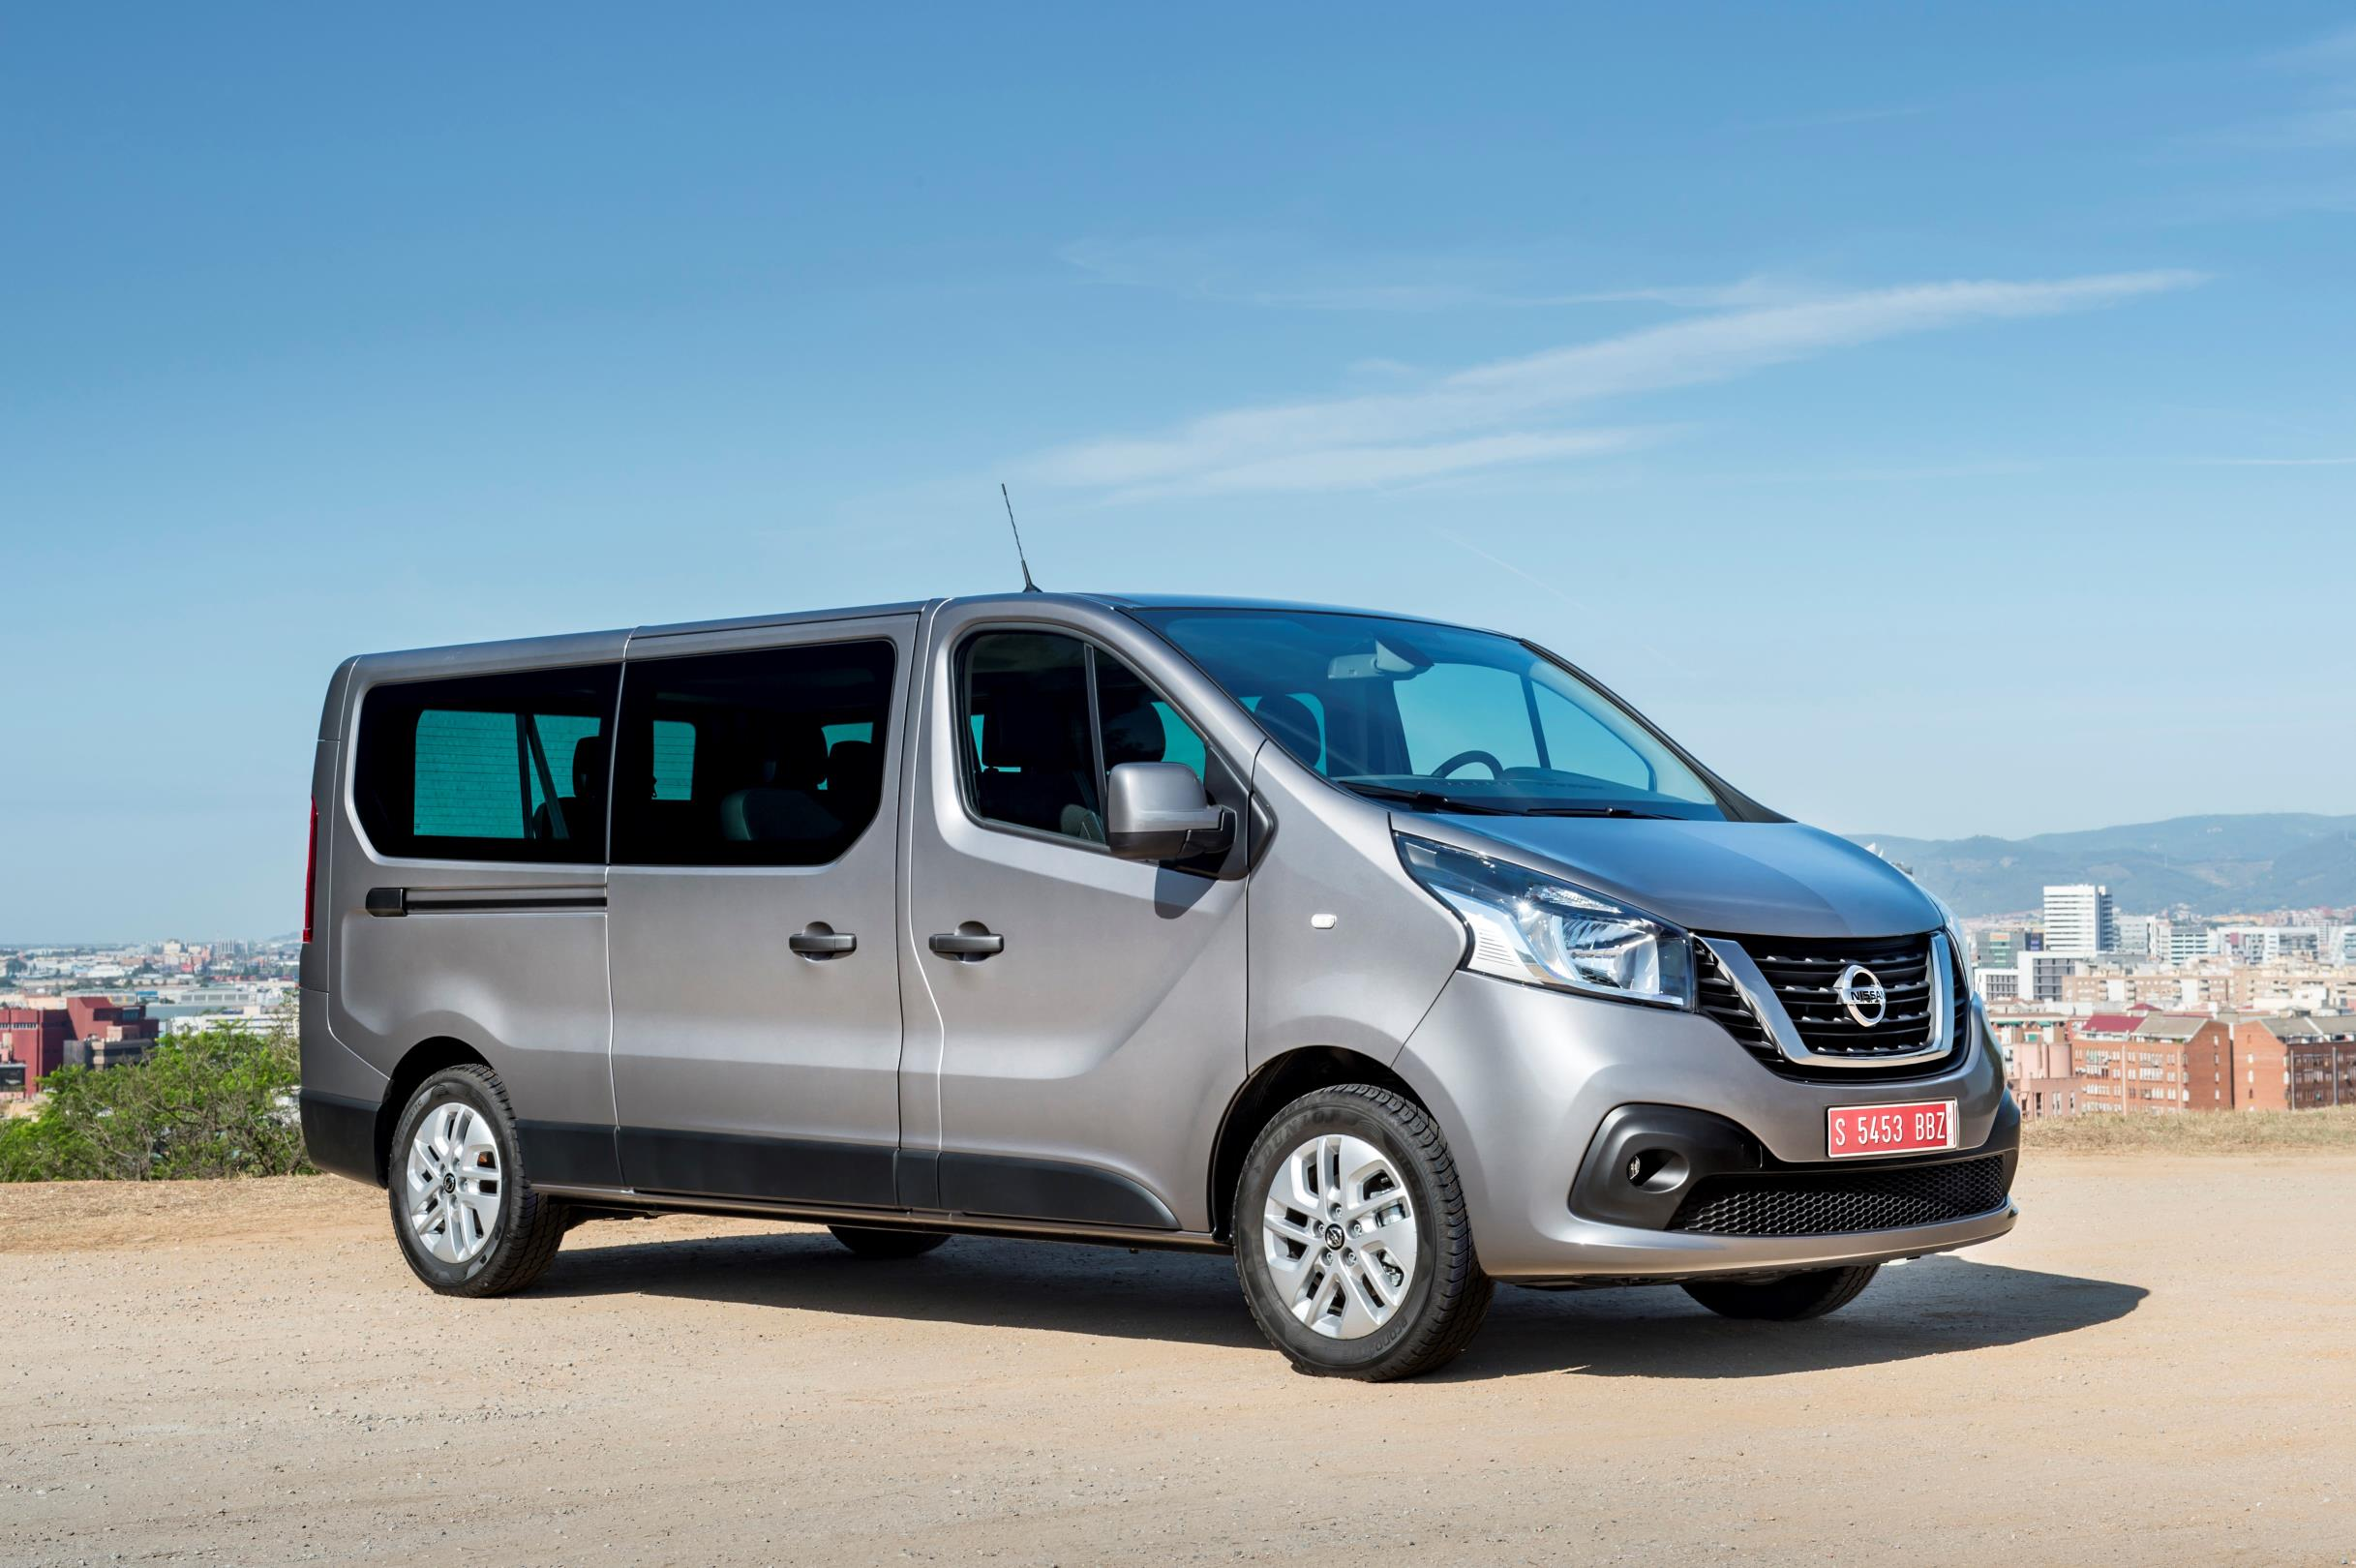 2016 Camper Van >> 2017 Nissan NV300 Replaces Primastar Van - autoevolution